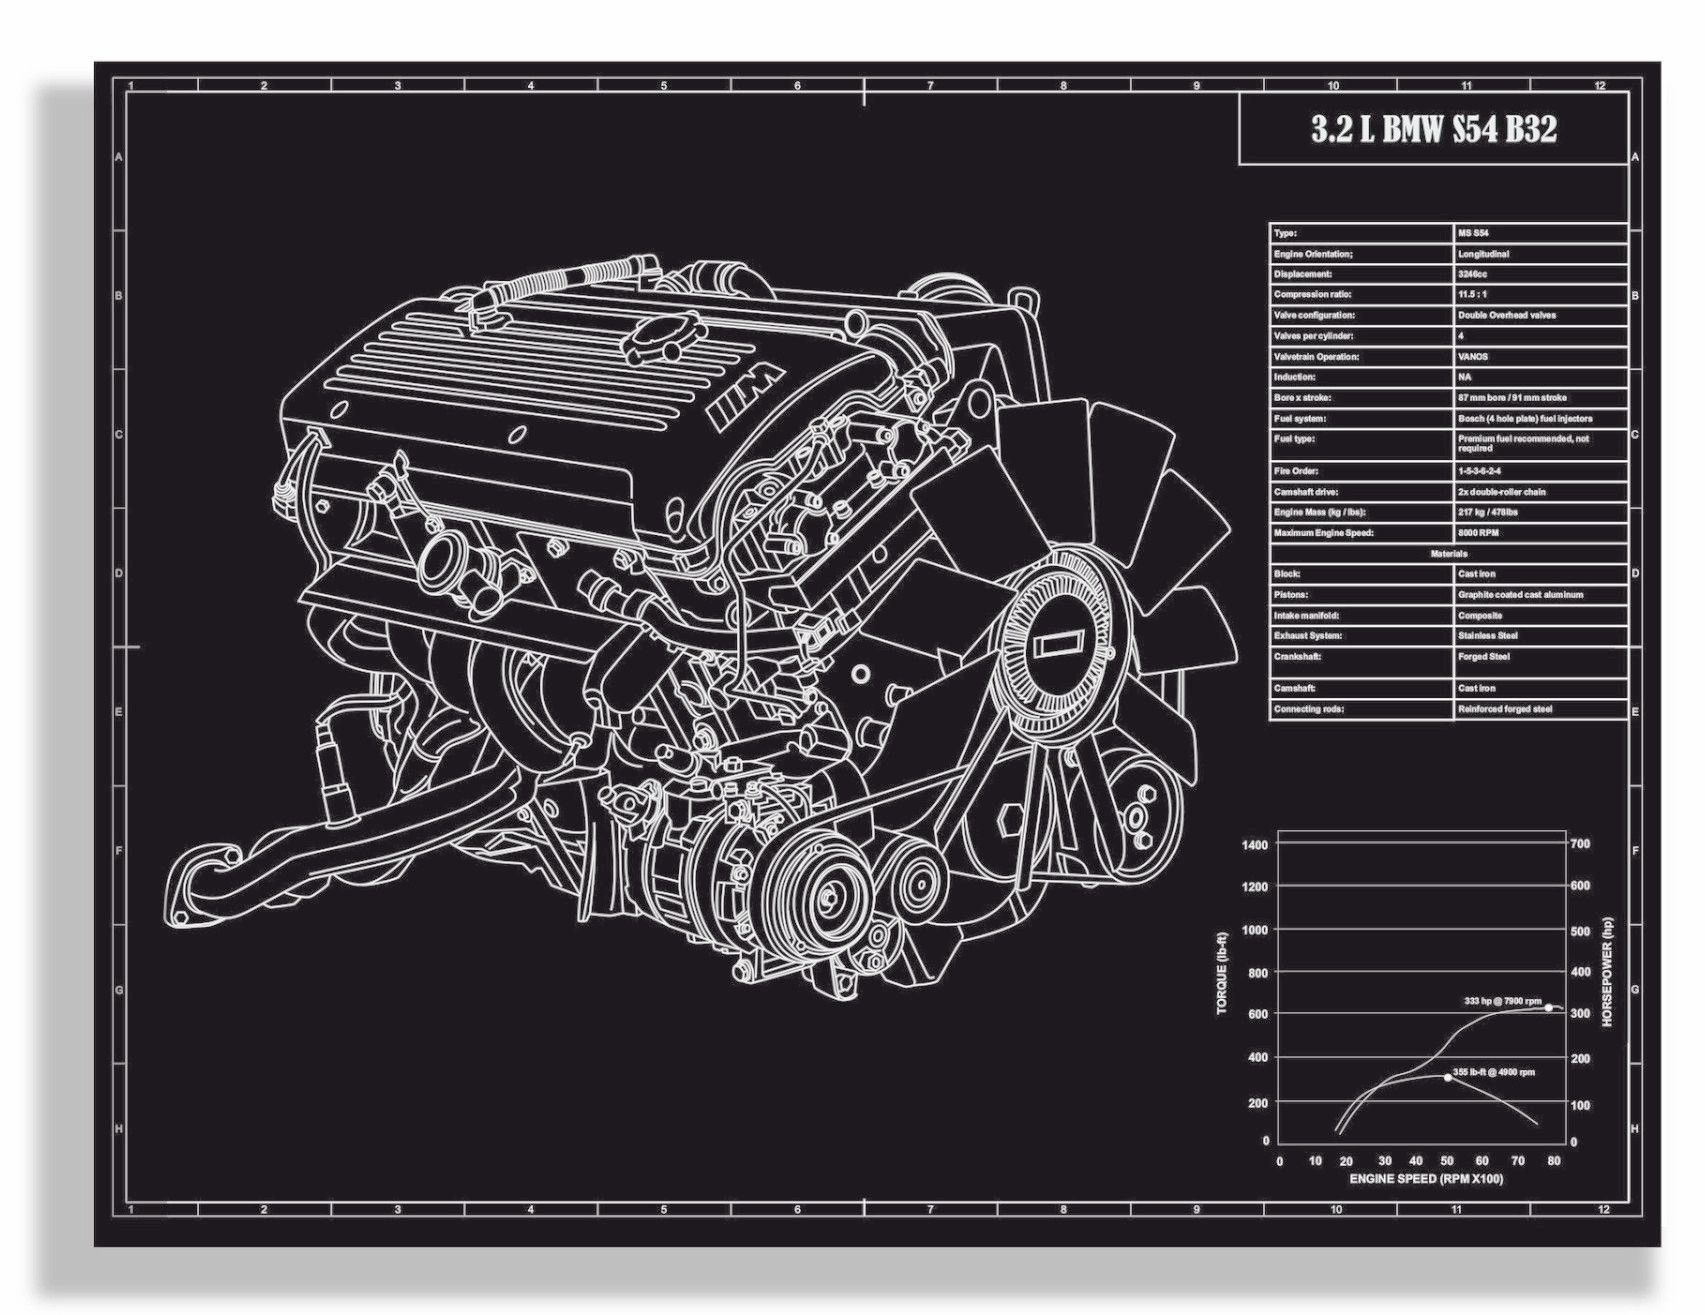 hight resolution of bmw e46 m3 s54 b32 engine